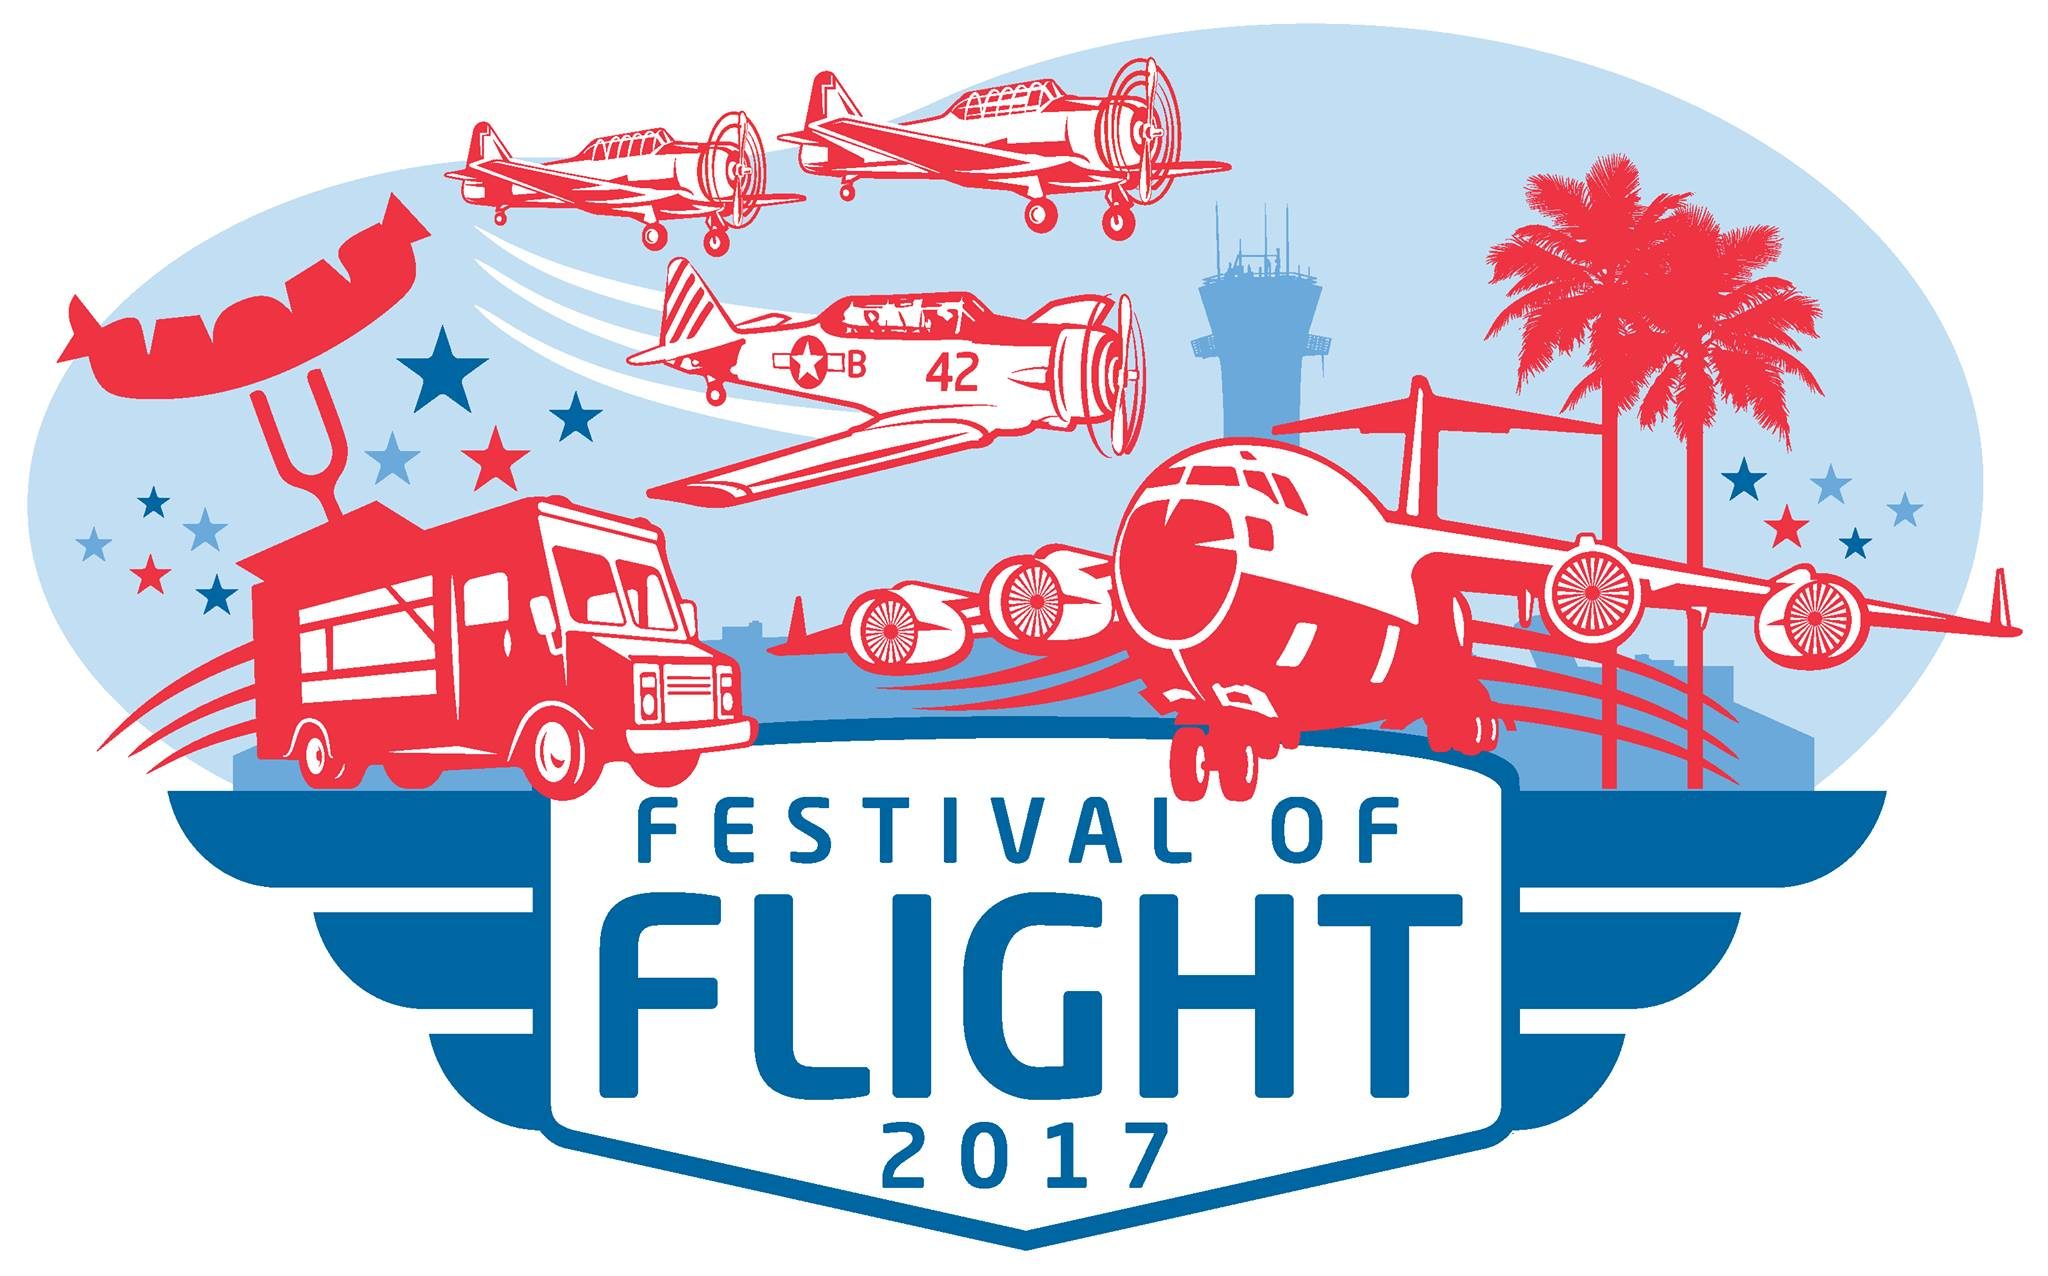 Festival_of_Flight.jpg